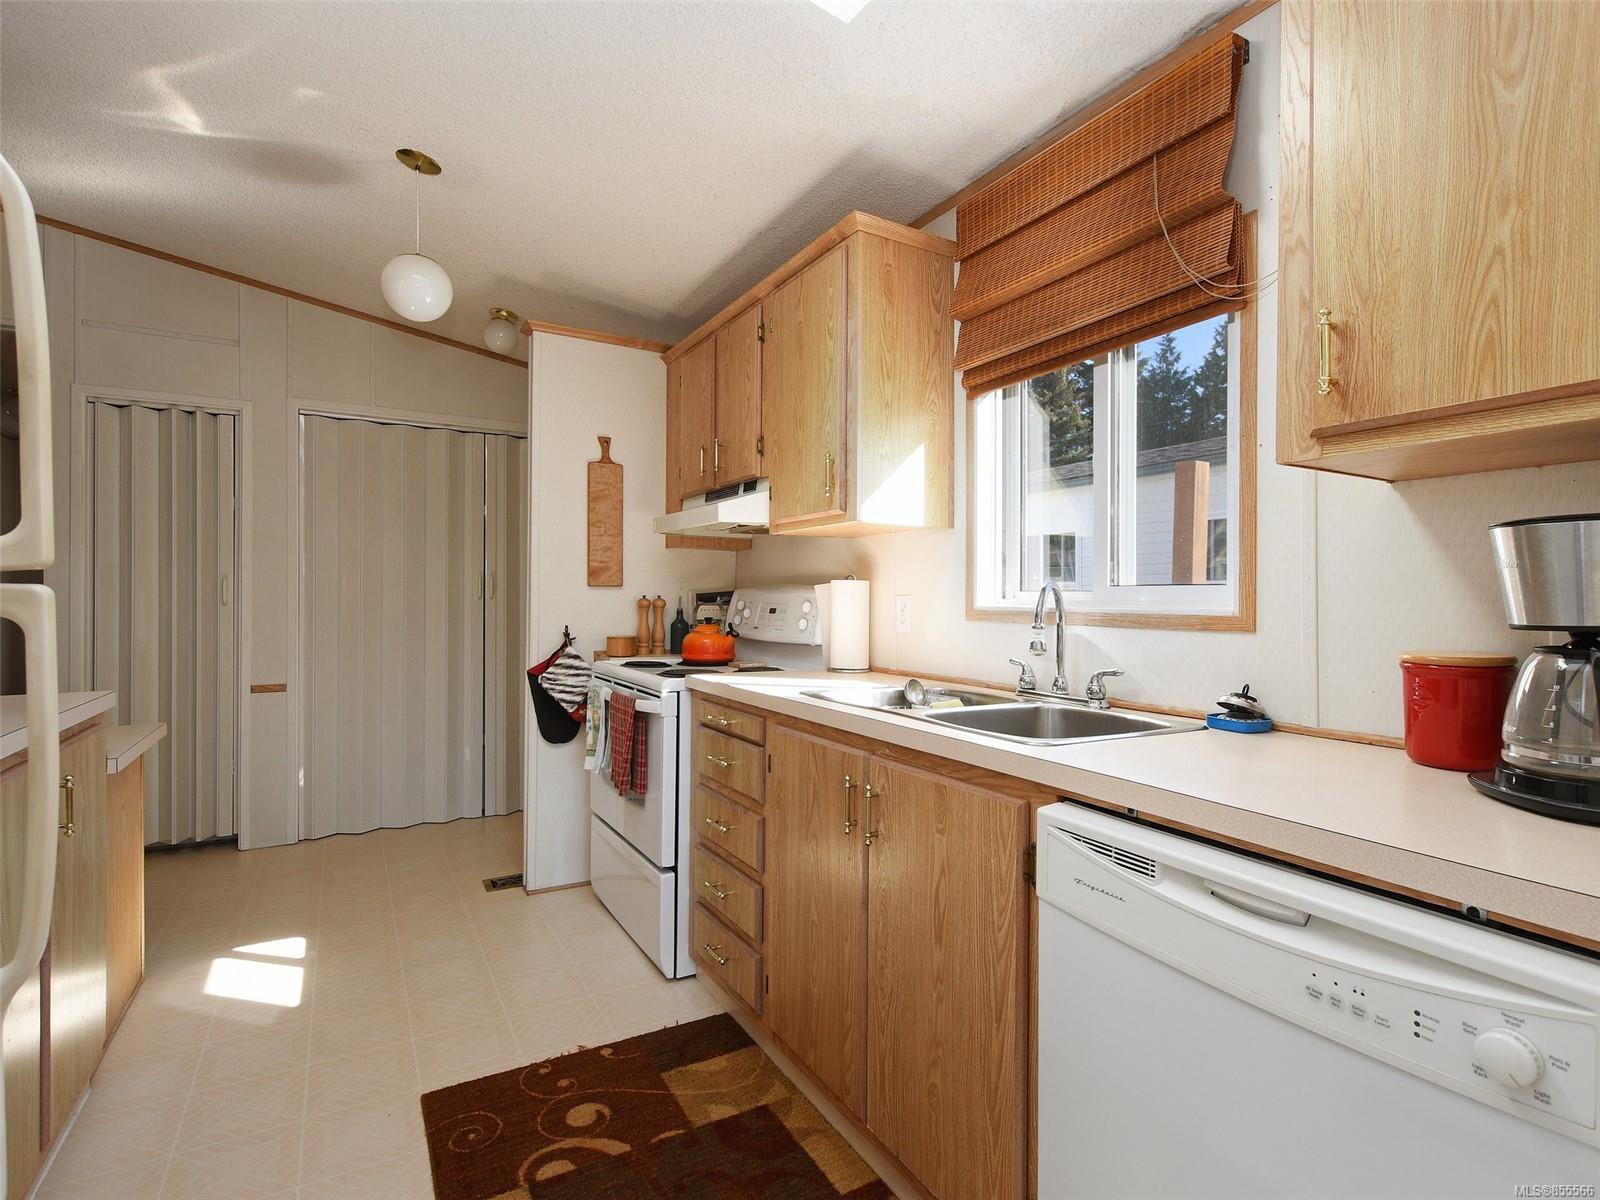 Photo 9: Photos: 28 7021 W Grant Rd in : Sk John Muir Manufactured Home for sale (Sooke)  : MLS®# 855566